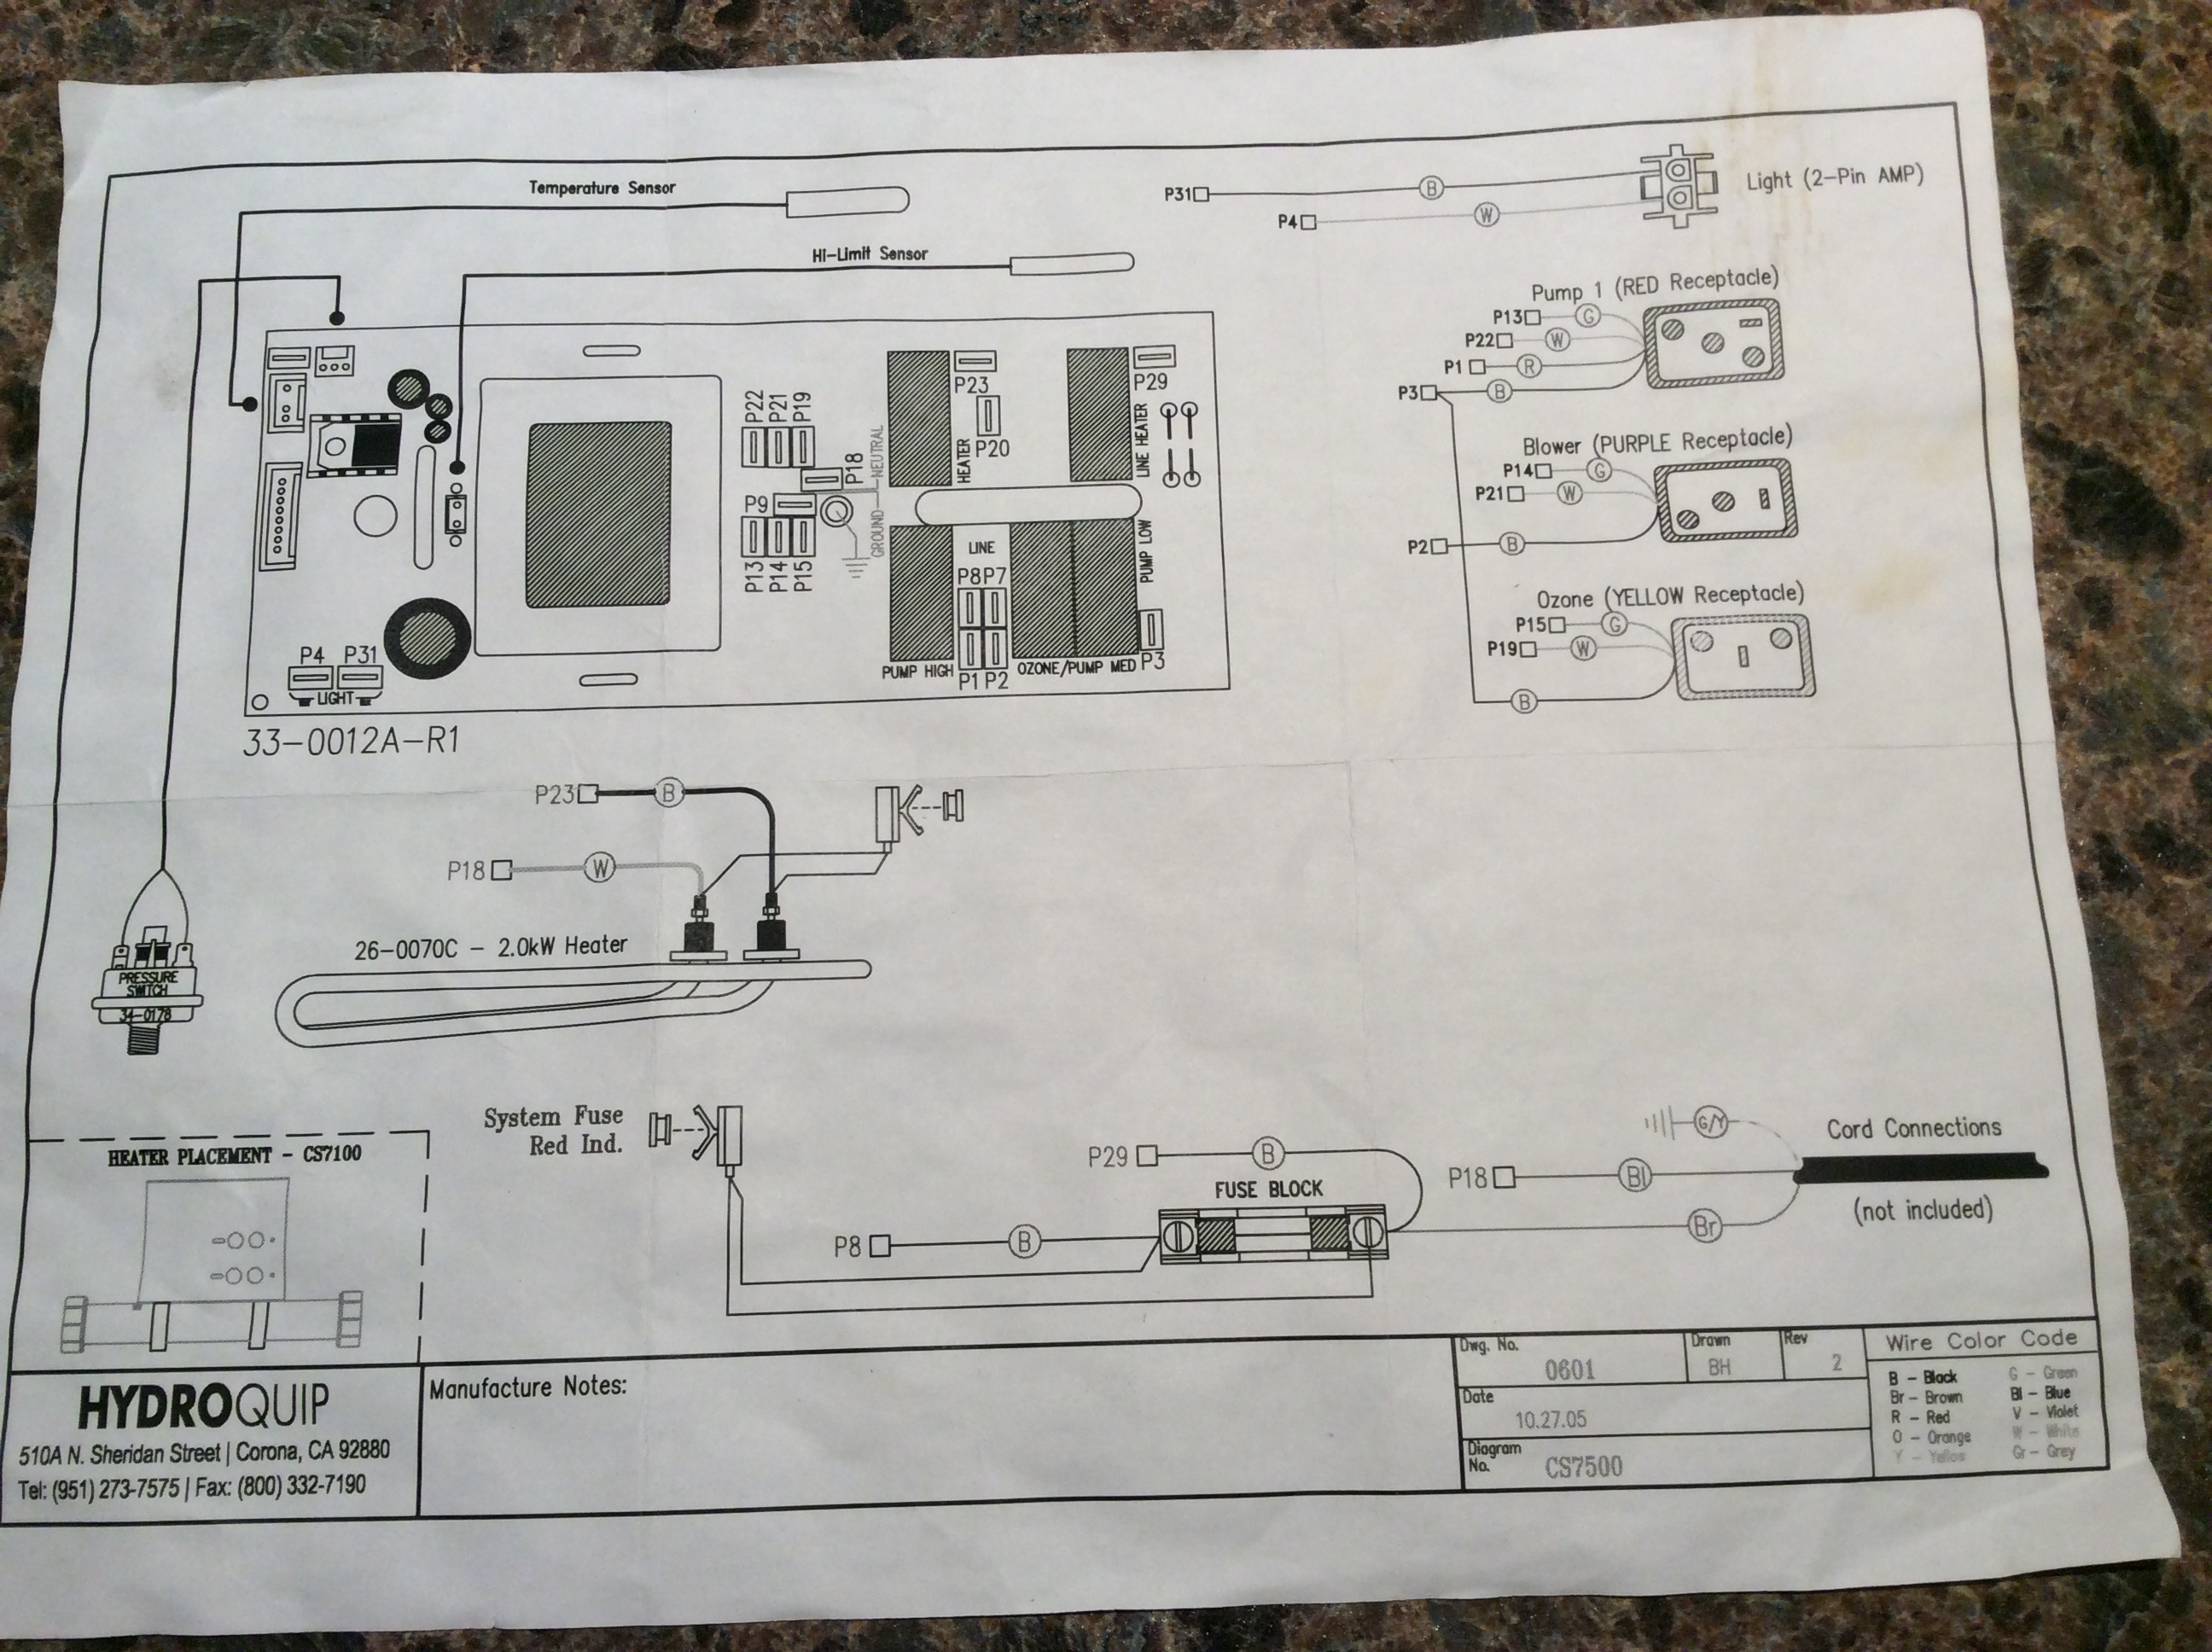 Hydro Quip Wiring Diagram Cs 6000 Schematic Diagrams Hydroquip Online U2022 3061 For Hot Tub